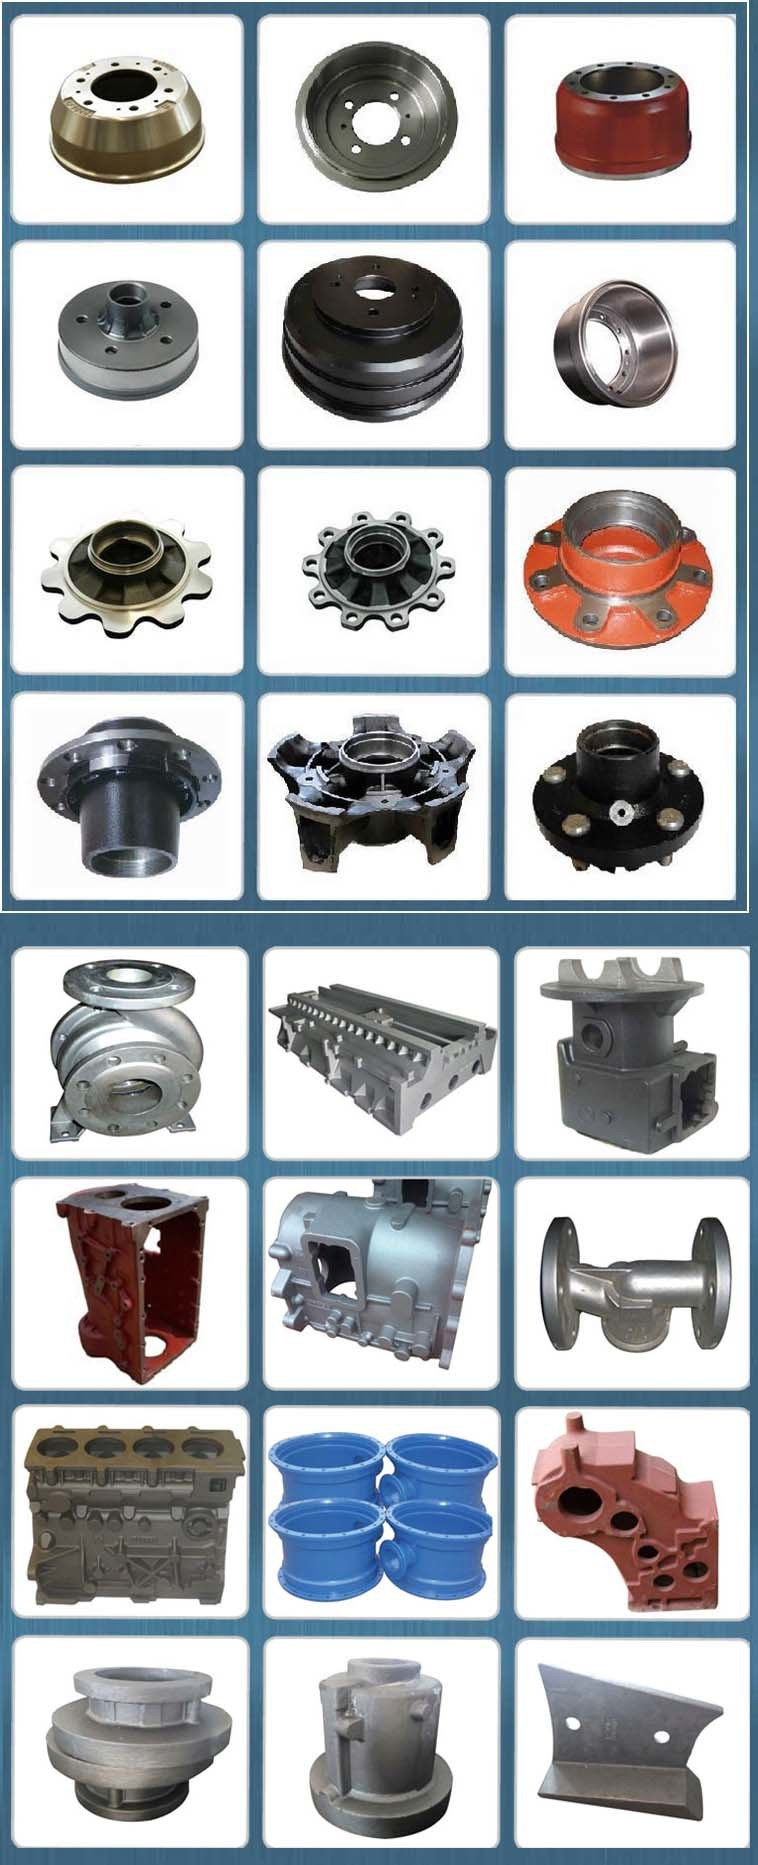 Wheel Axle Hub of Truck Parts, Comes in Gray Iron and Ductile Iron, Used in BPW, Daf